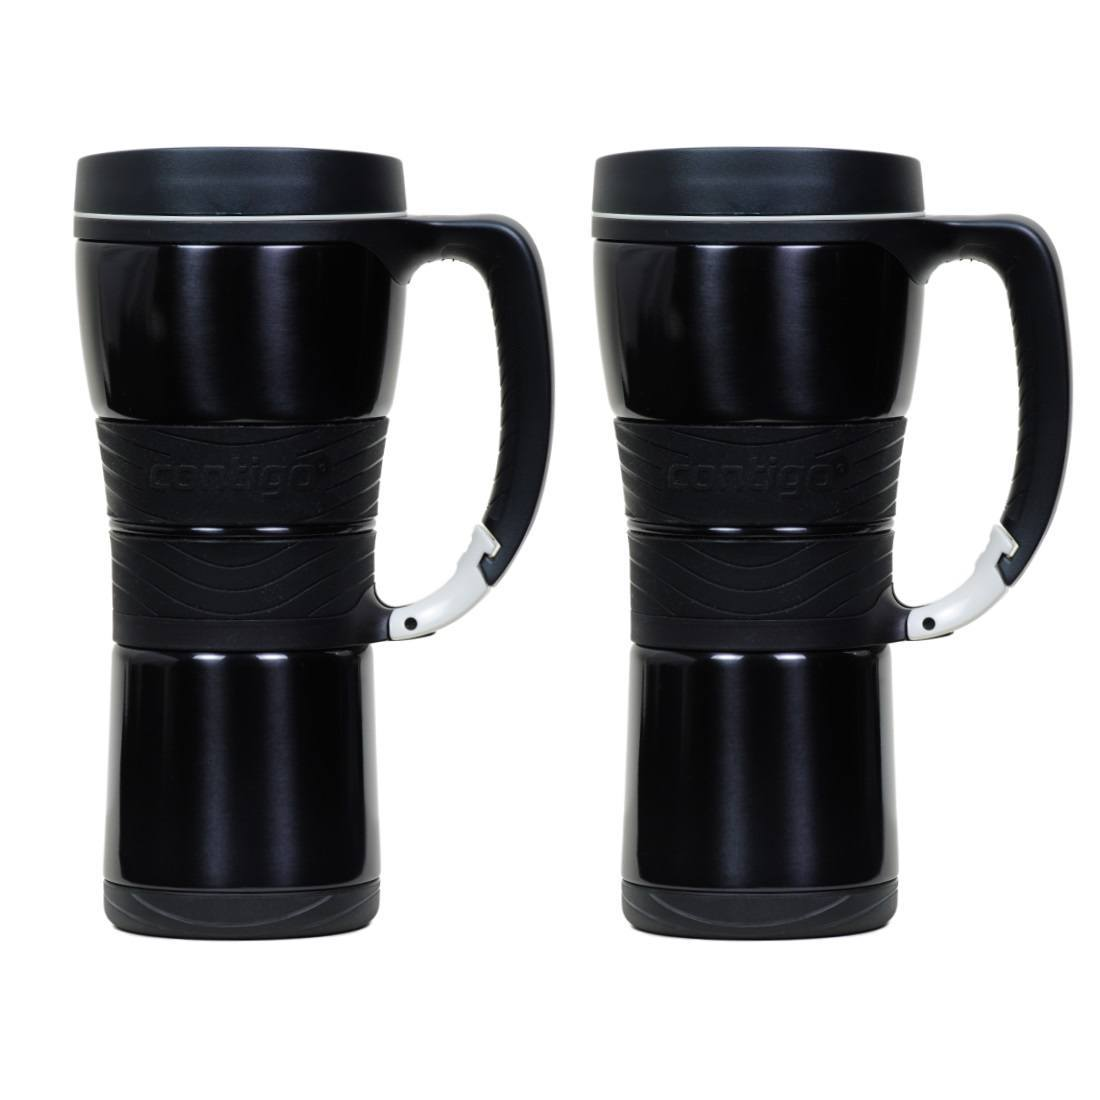 16oz Ignite USA Contigo EXD110A02 Extreme Vacuum Insulated Stainless Steel Travel Mug with Handle Black 16 oz